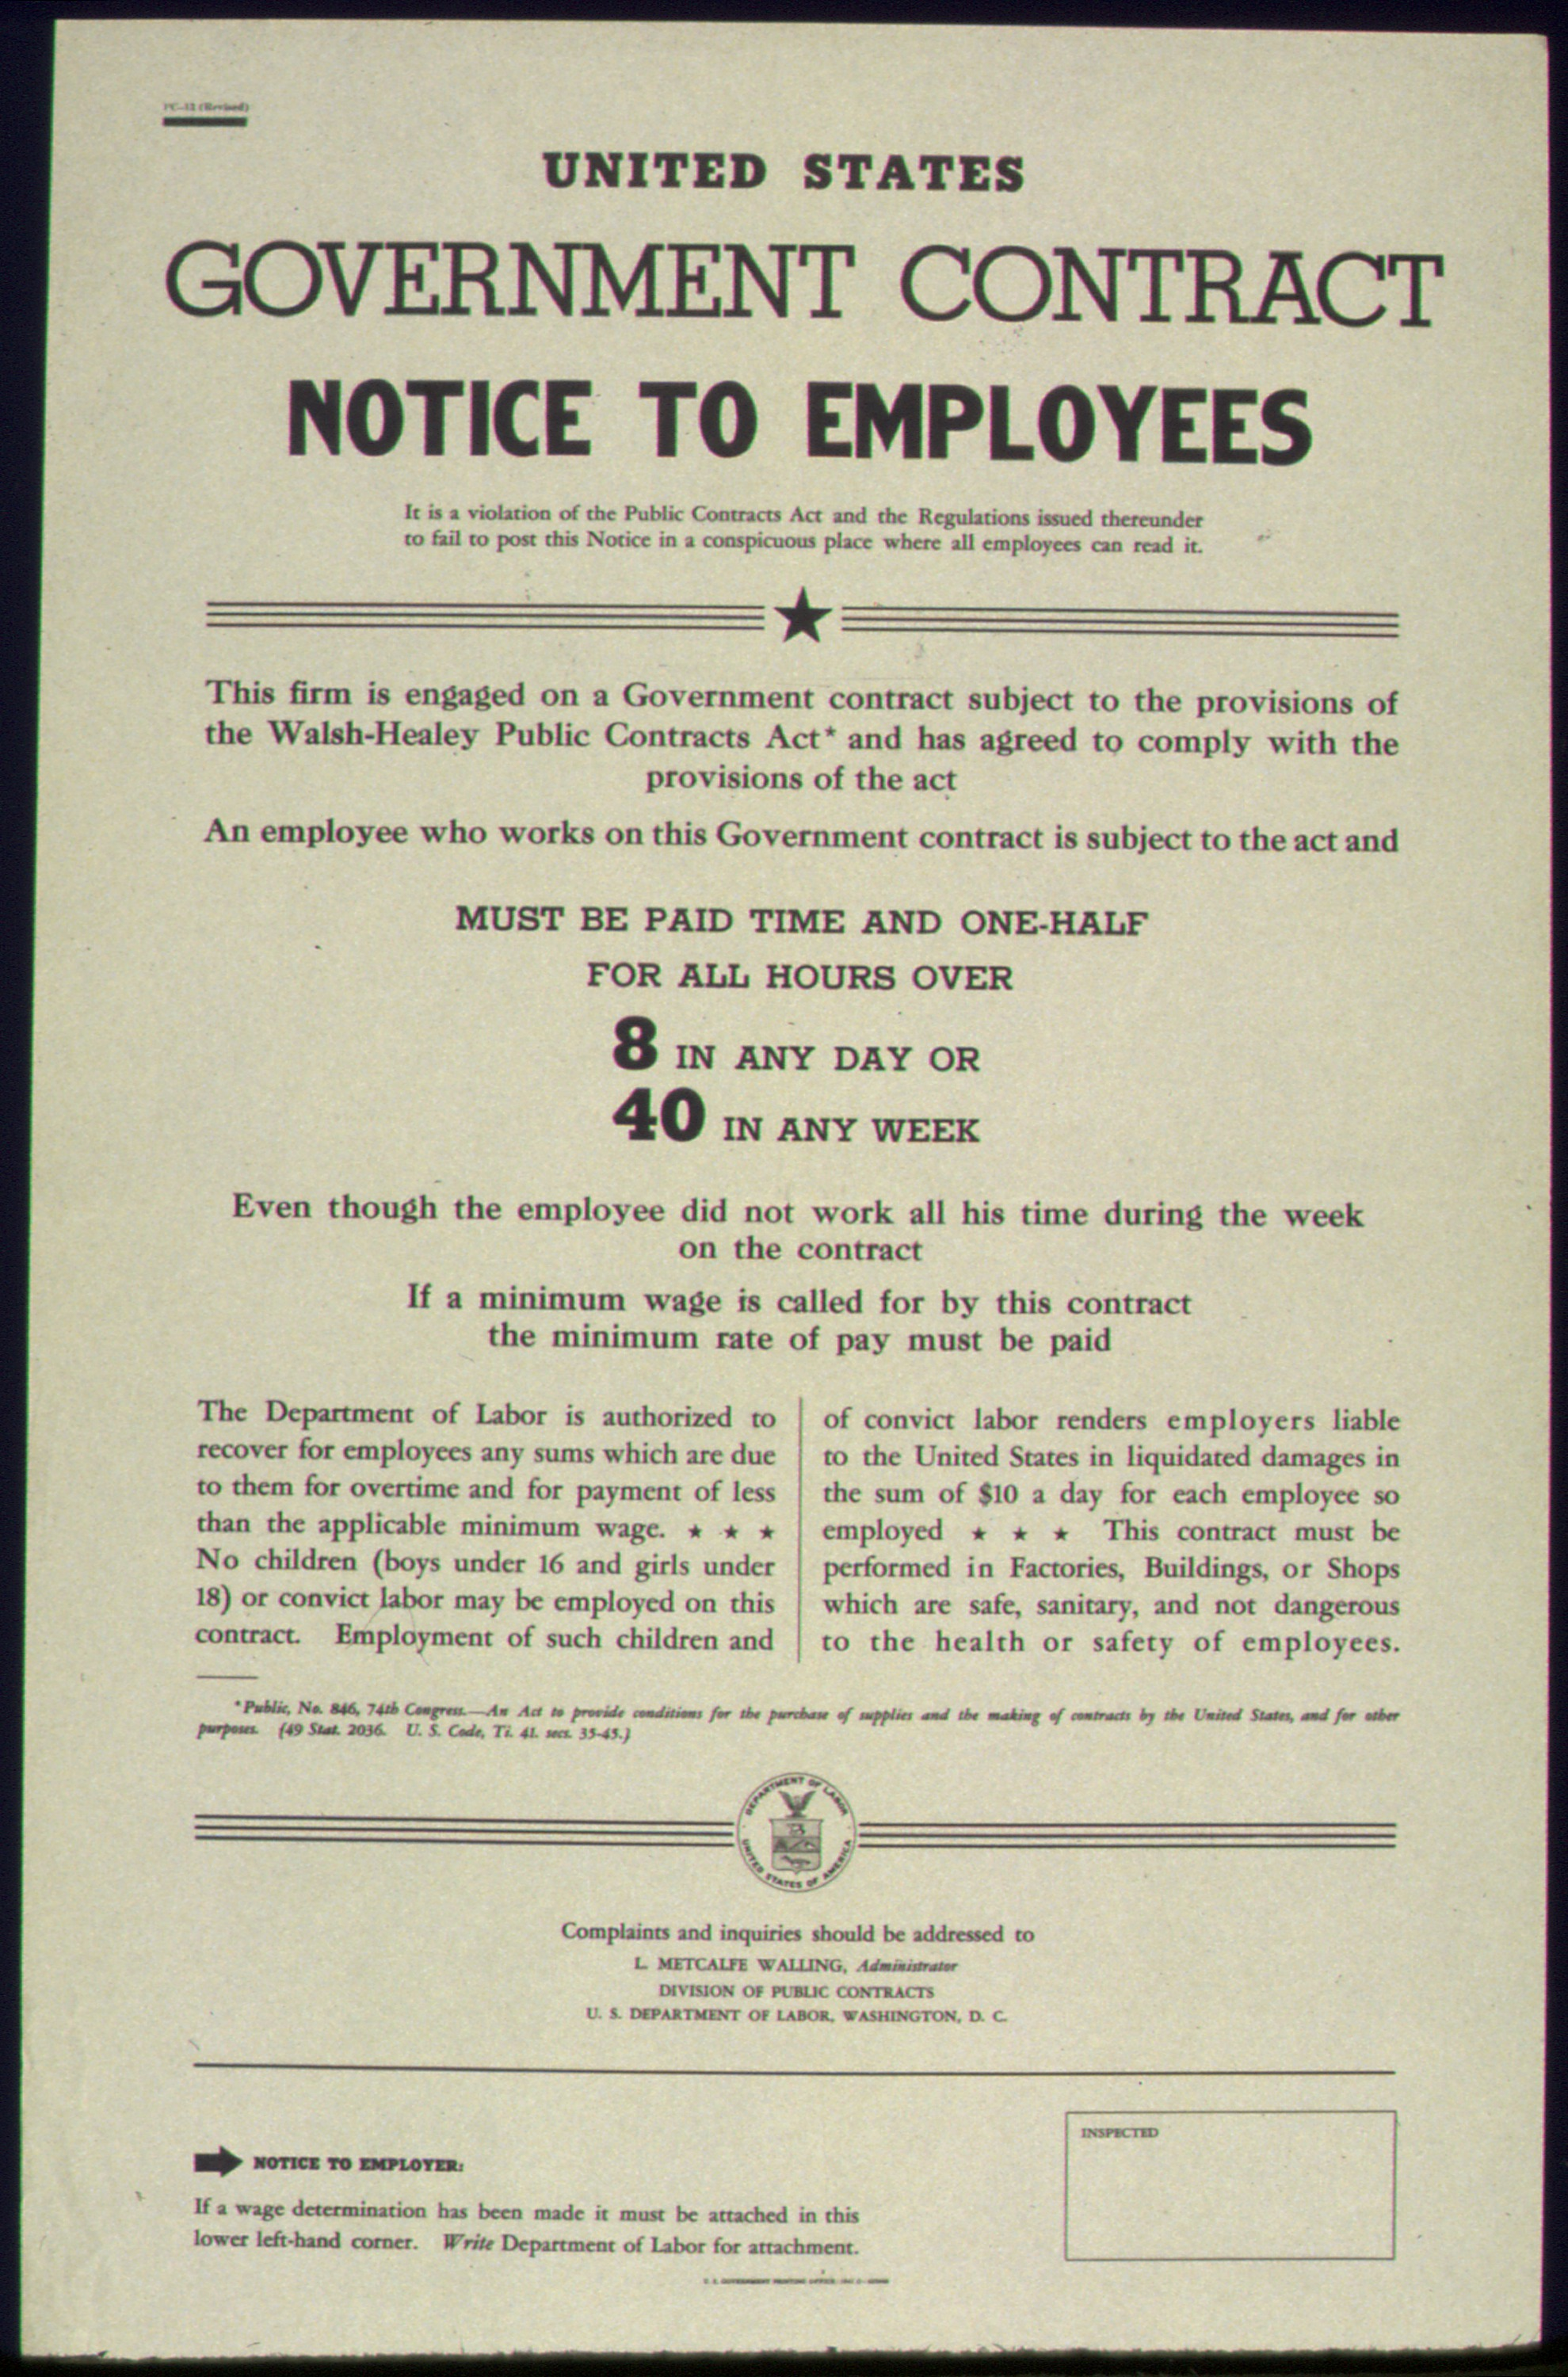 FileUNITED STATES GOVERNMENT CONTRACT NOTICE TO EMPLOYEES